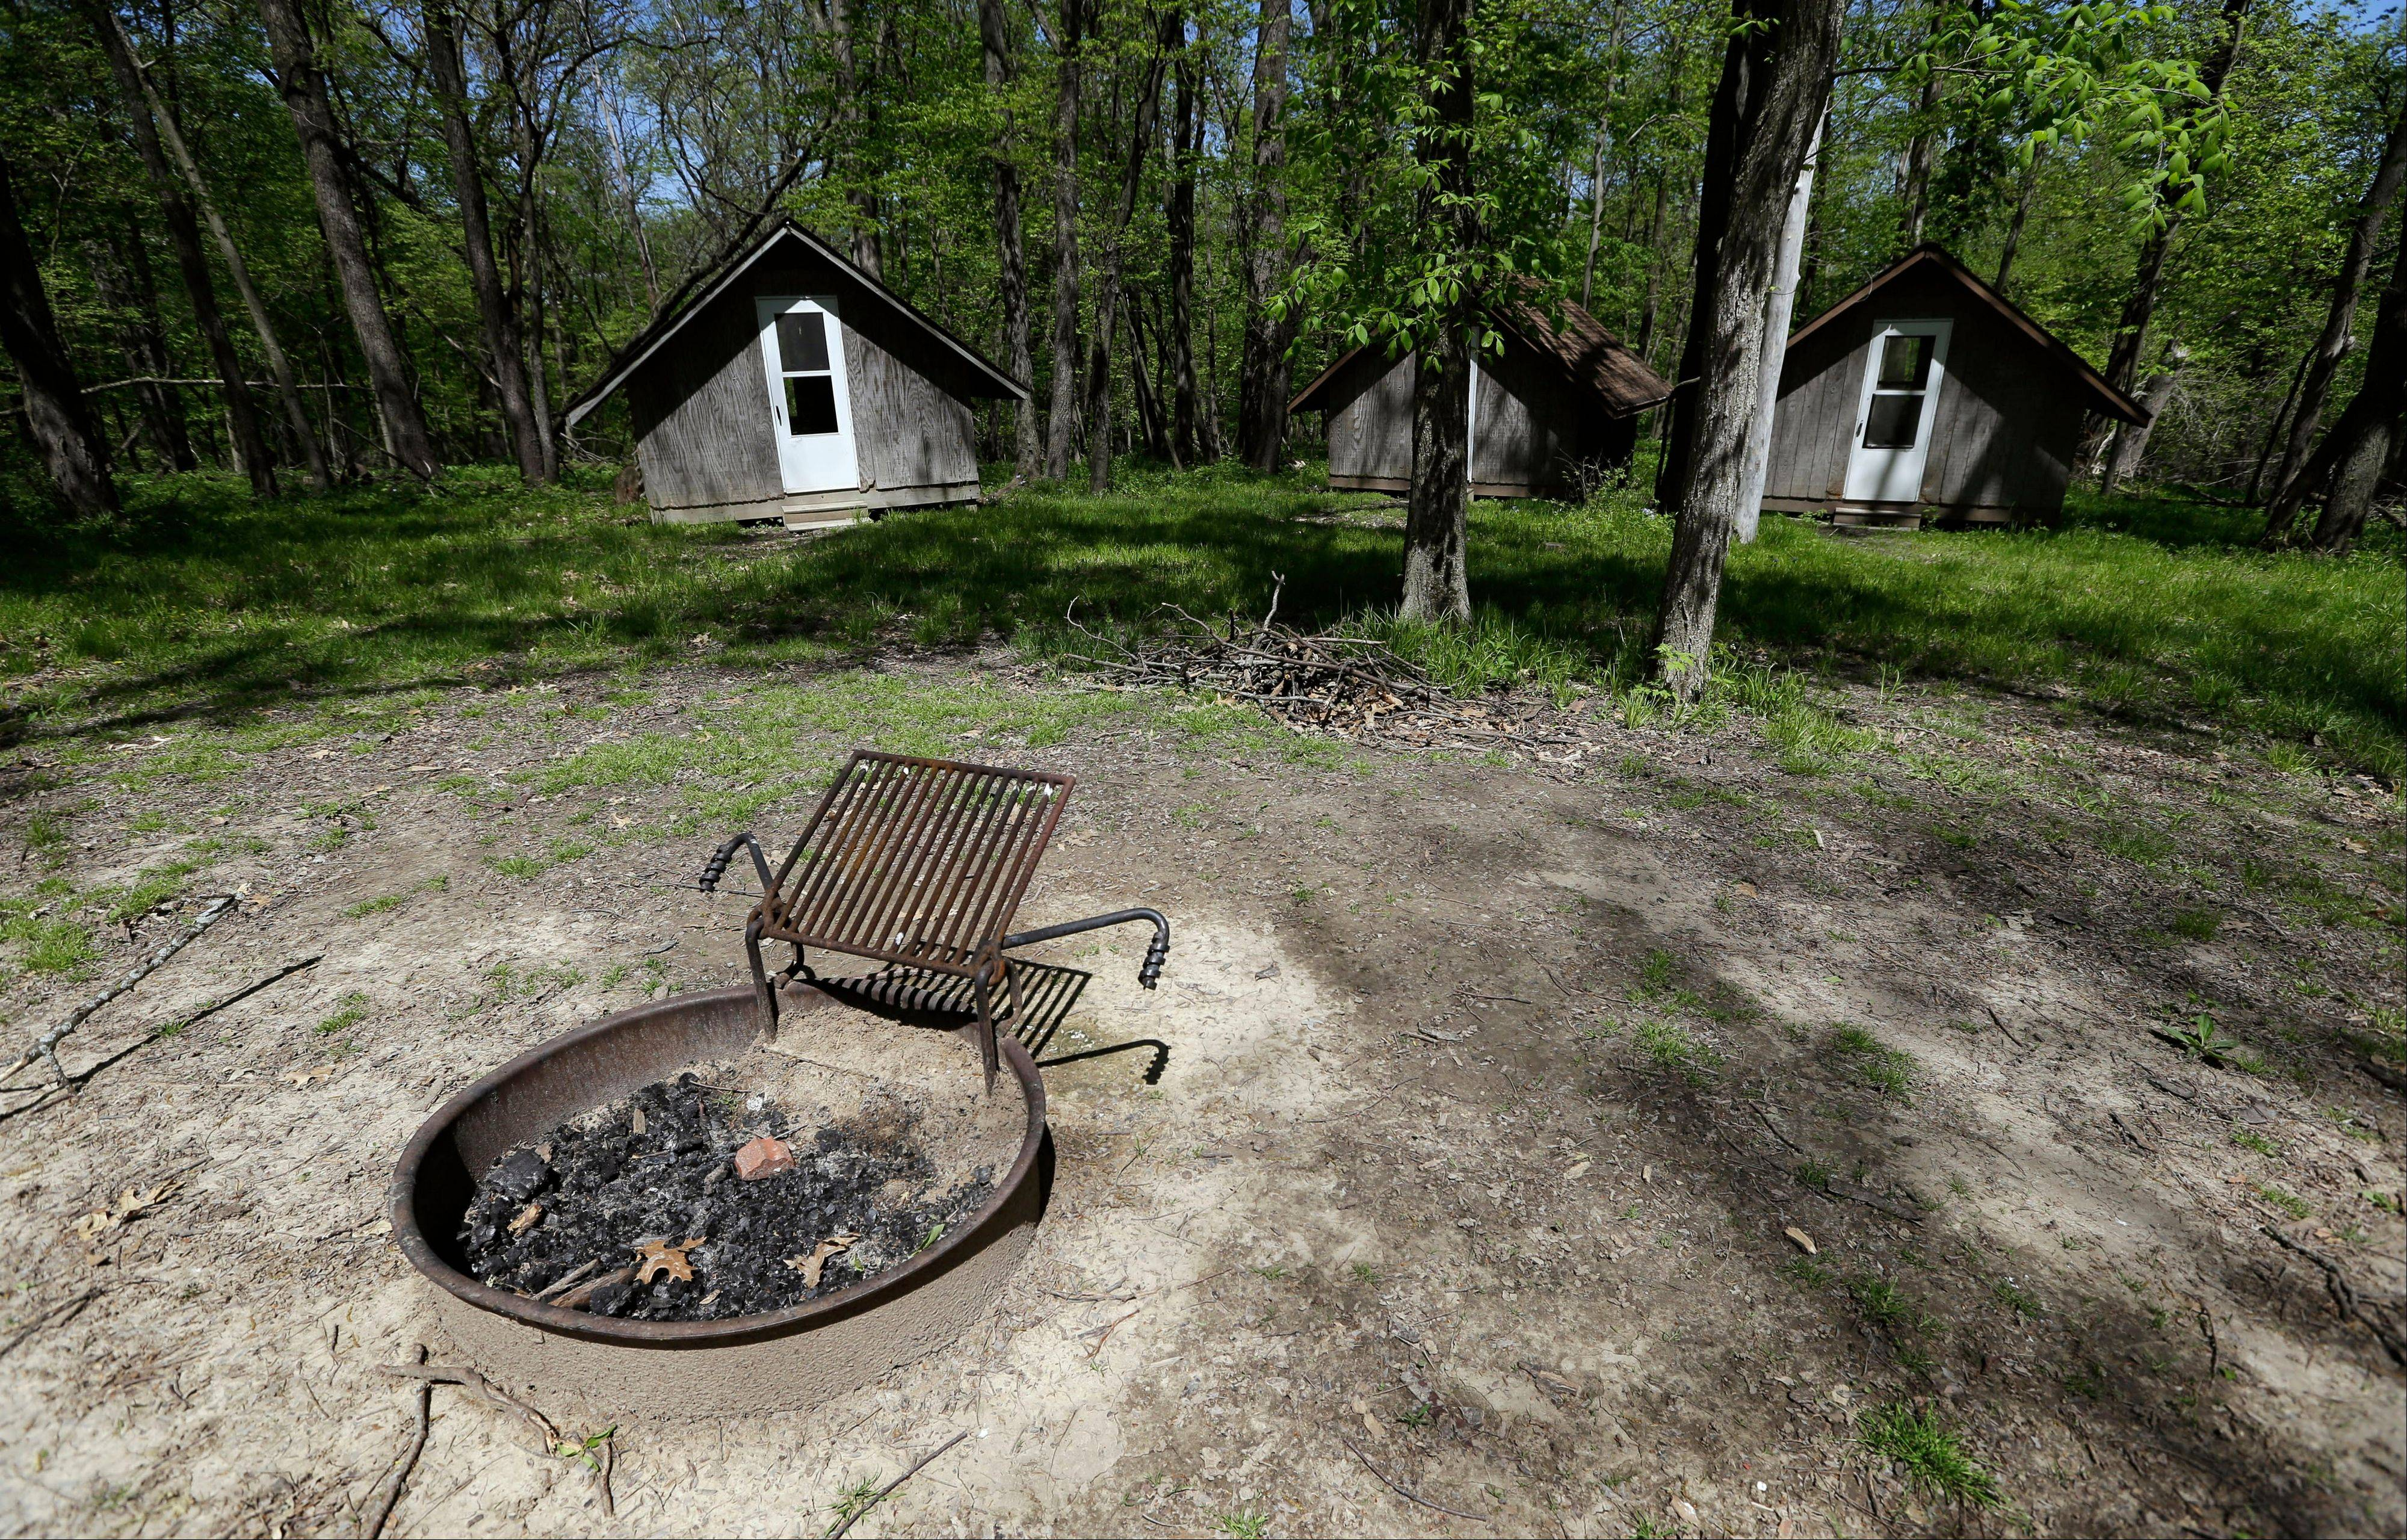 This Tuesday, May 14, 2013 photo shows a fire pit and cabins at the Camp Conestoga Girls Scouts camp, in New Liberty, Iowa. In an effort to save money, Girl Scout councils across the country are making proposals that would have been unthinkable a generation ago: selling summer camps that date back to the 1950s.